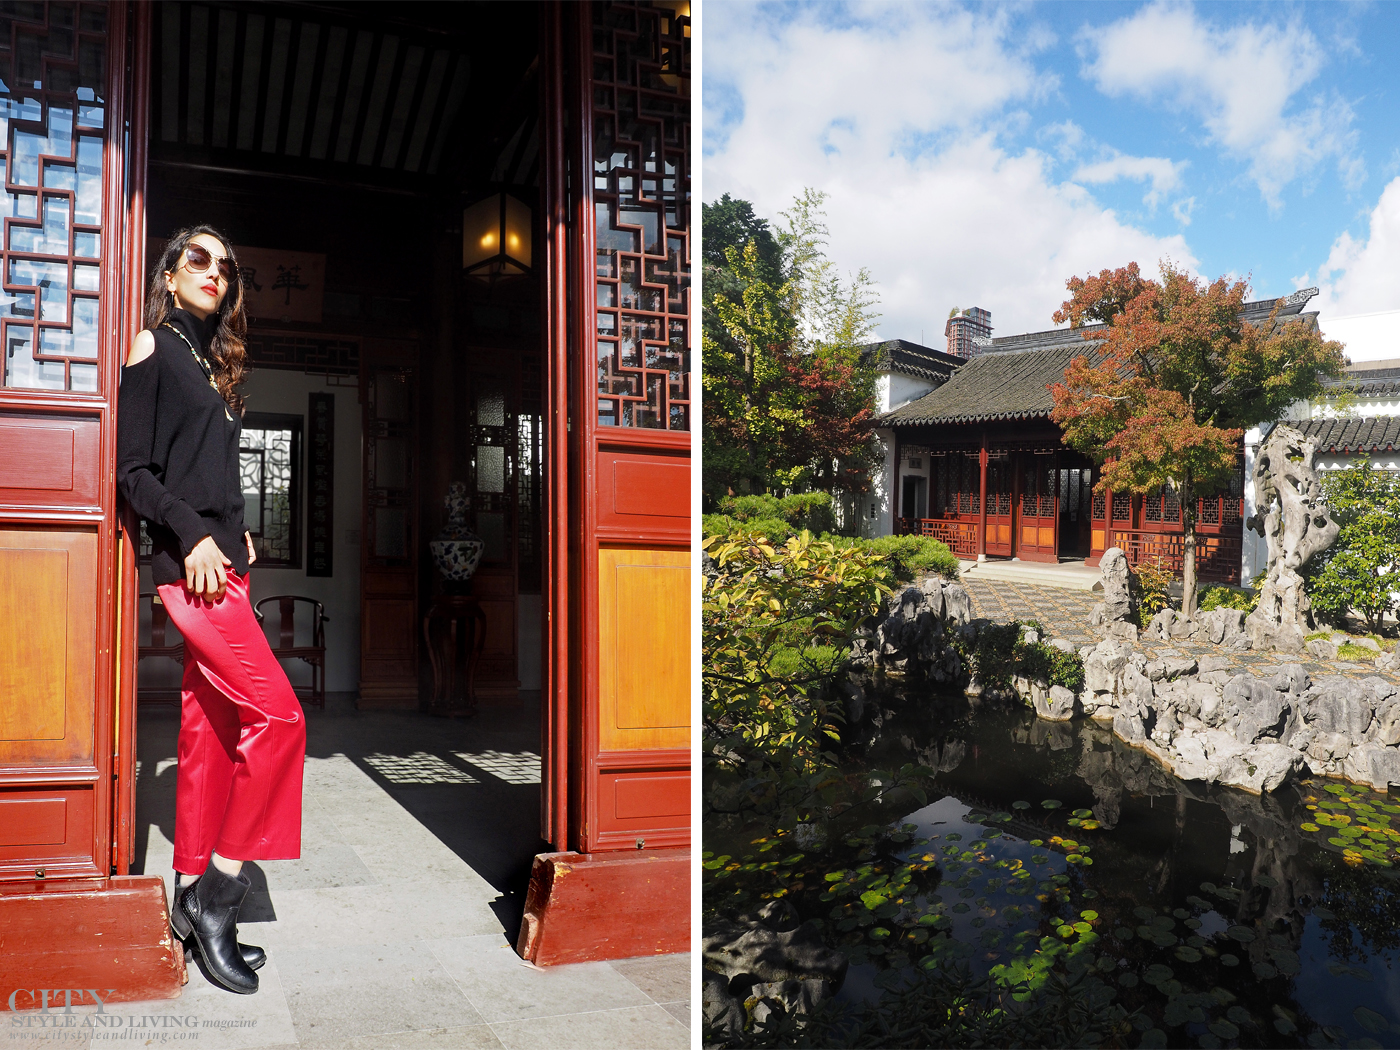 City Style and Living The Editors Notebook style blogger Shivana M at Dr. Sat Yuen Sen Chinese Gardens in Vancouver wearing a cashmere top and red cropped pants. Lucky Red at Dr. Sun Yat-Sen Classical Chinese Garden in Vancouver